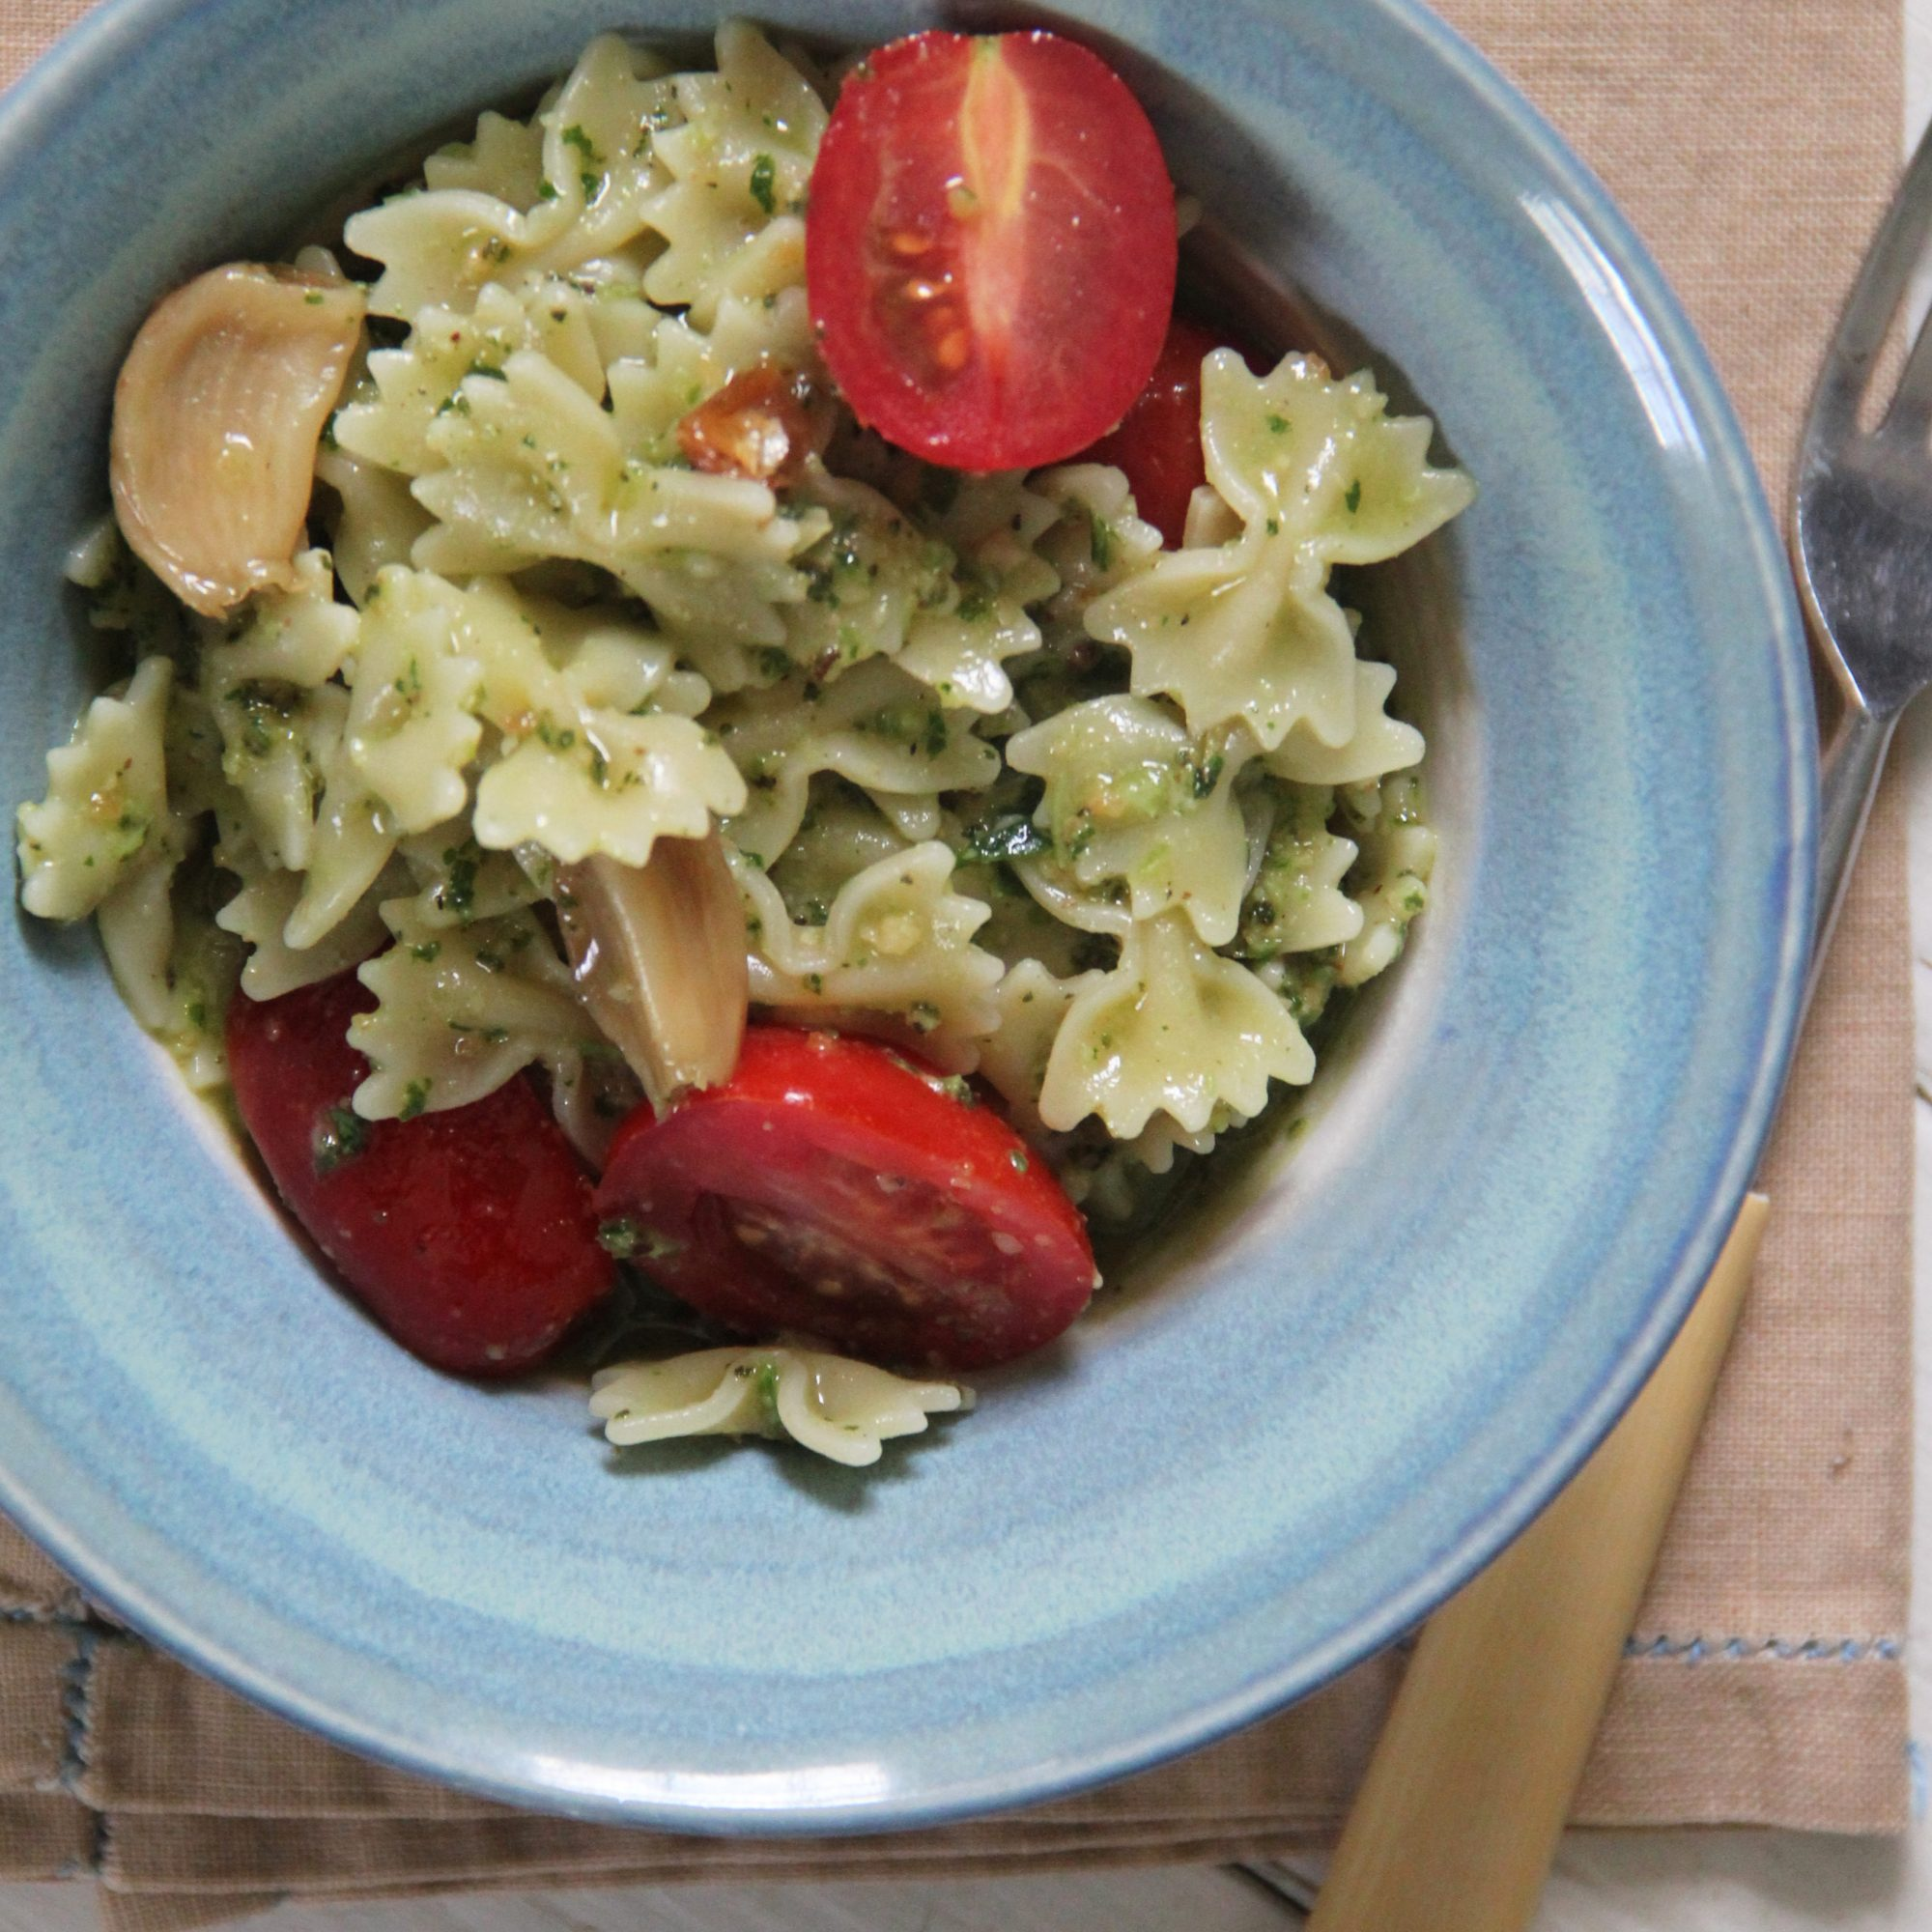 HD-201405-r-farfalle-with-roasted-garlic-pesto-and-cherry-tomatoes.jpg